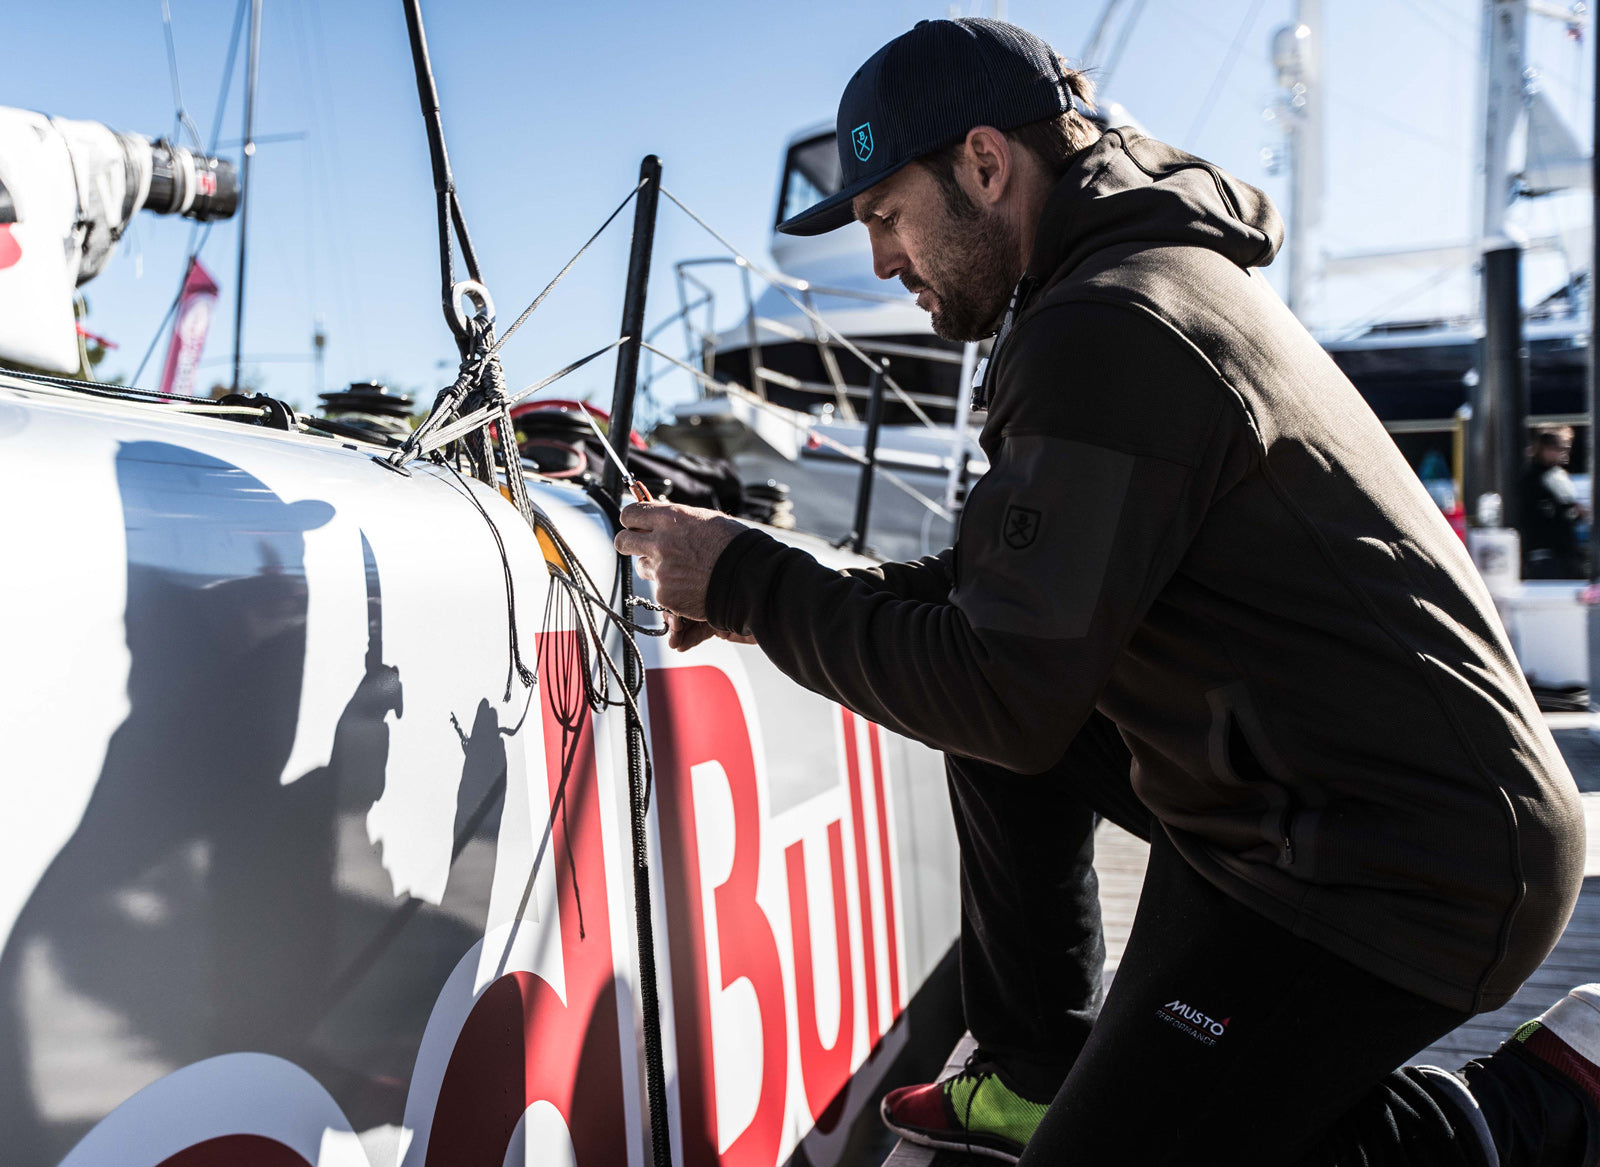 Pro Sailor Boat Preparation in The Kula Windpro Hoodie Newport Red Bull Foiling Catamaran